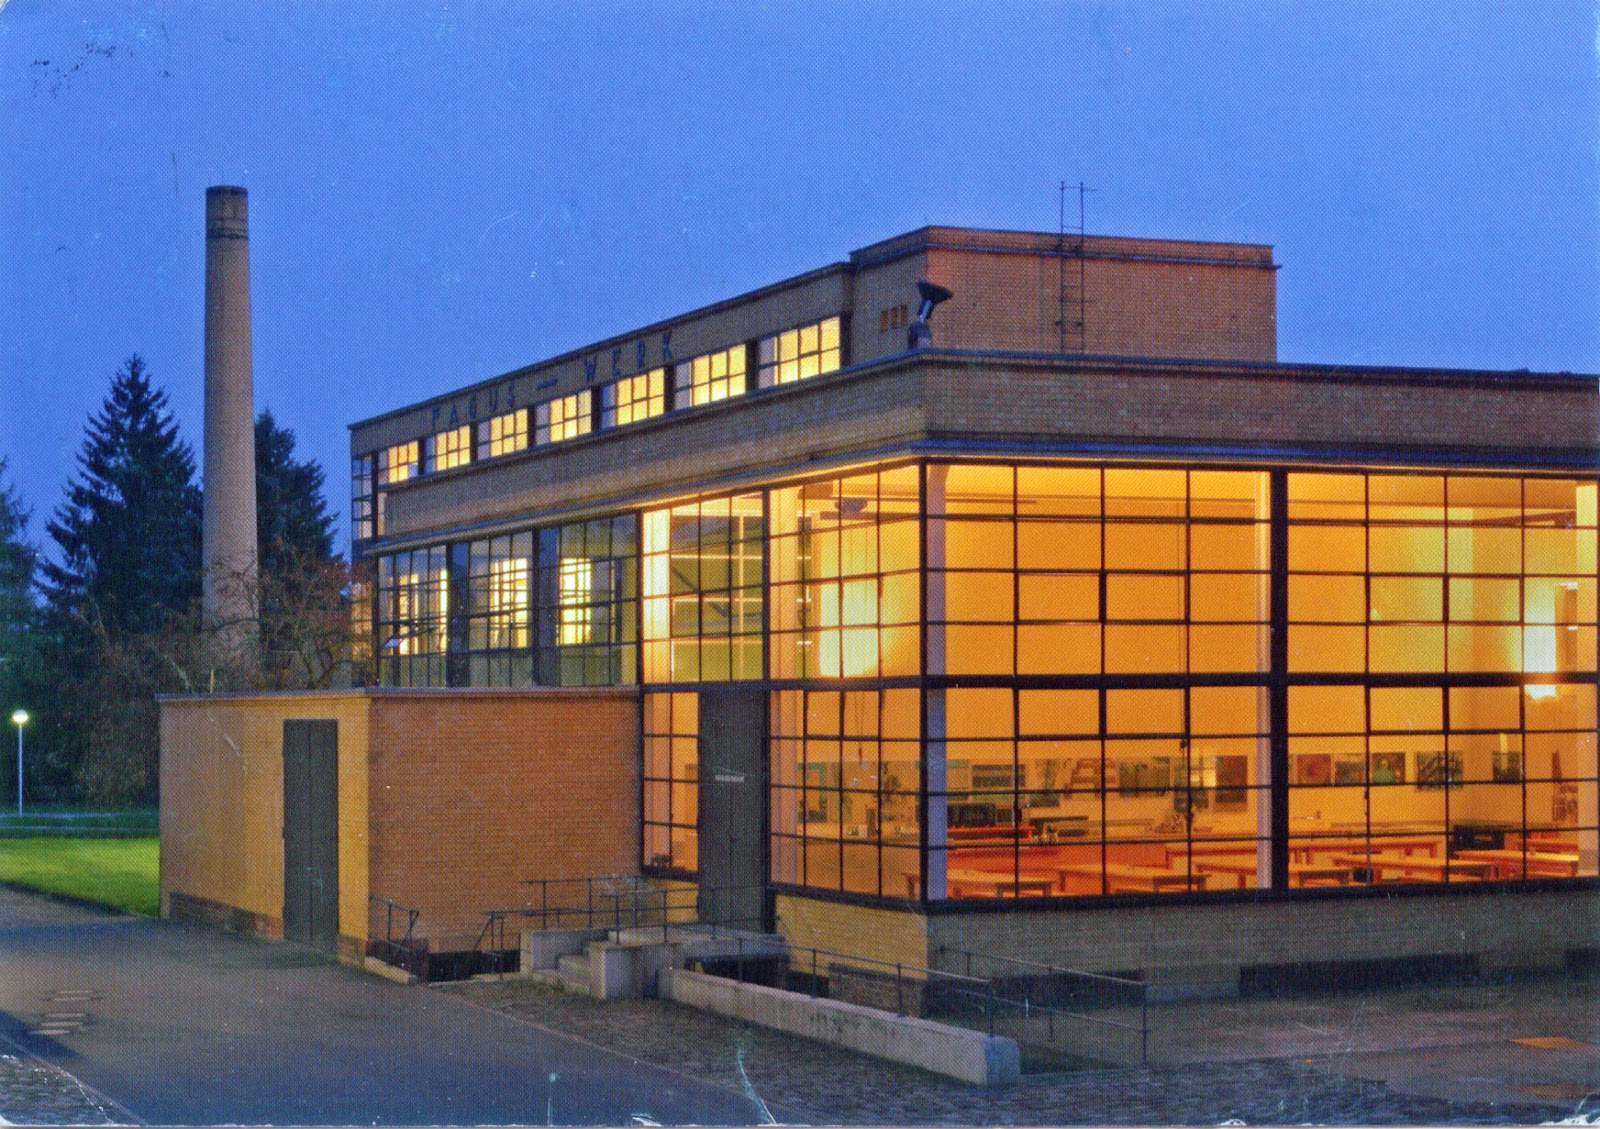 World come to my home 0378 1410 germany lower saxony for Peter behrens aeg turbine factory